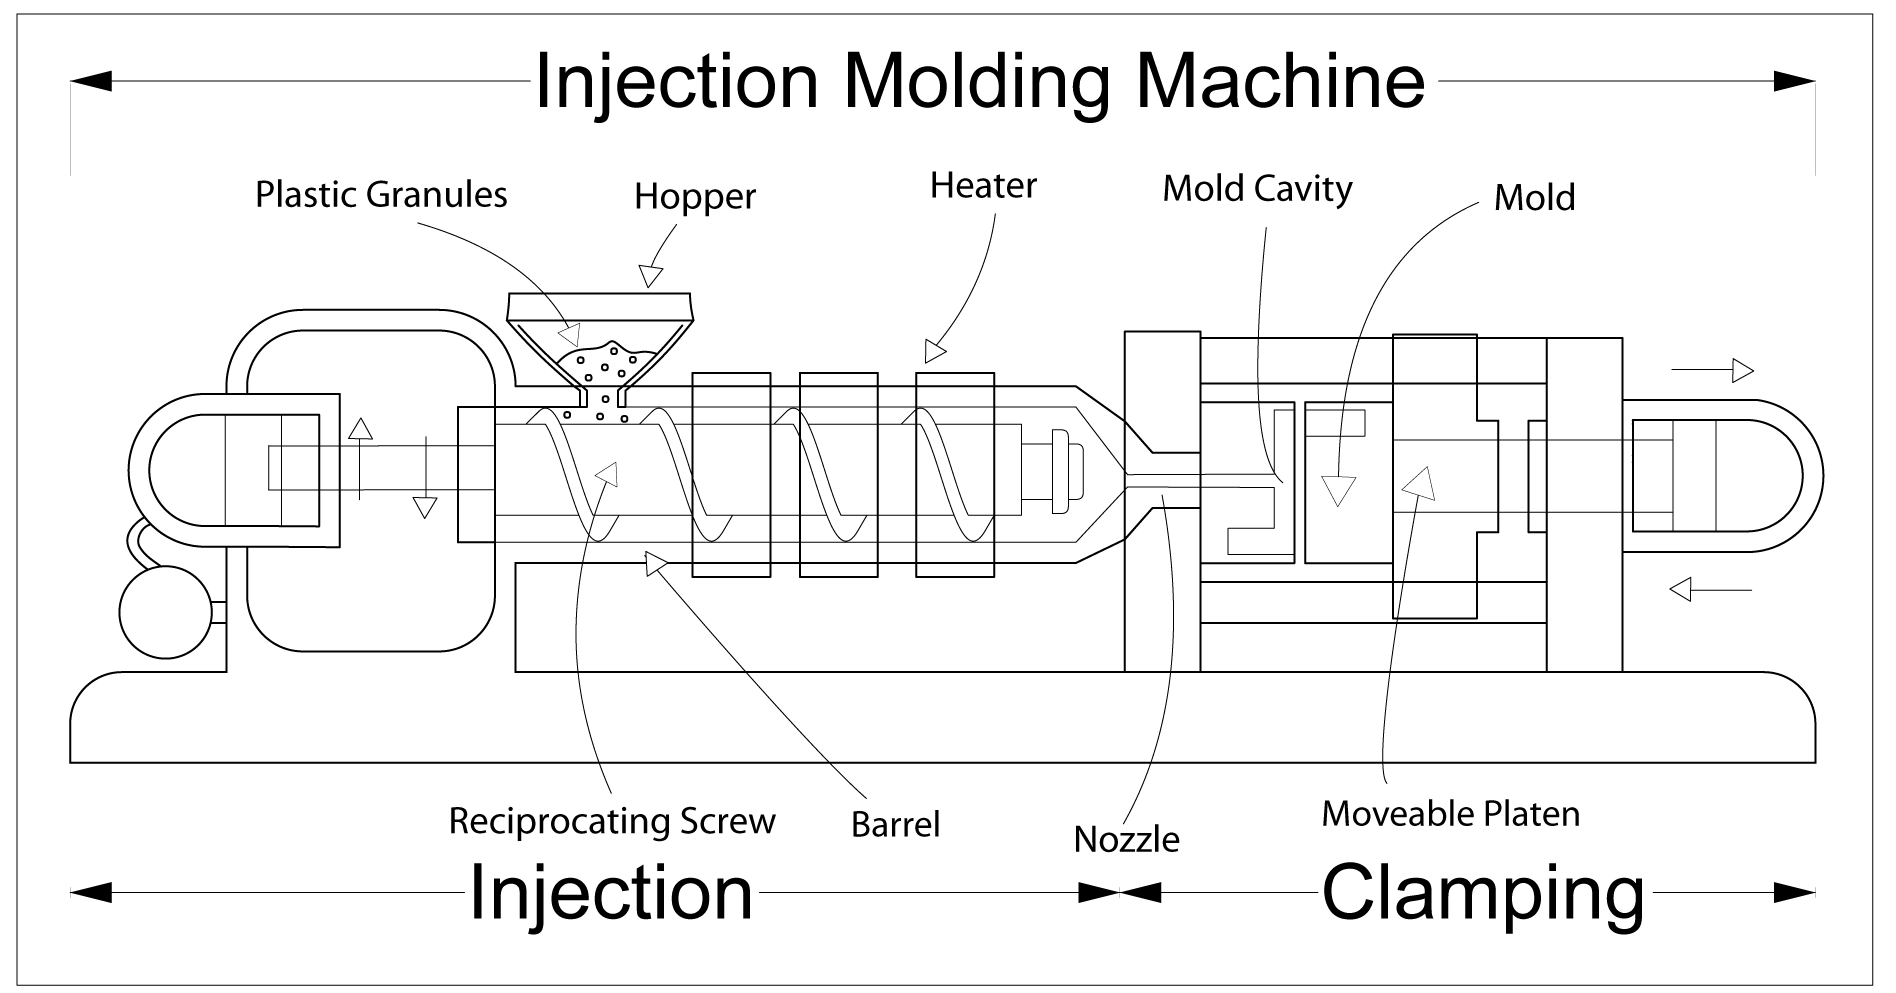 Water Mold Diagram Injection moulding - Wikiwand